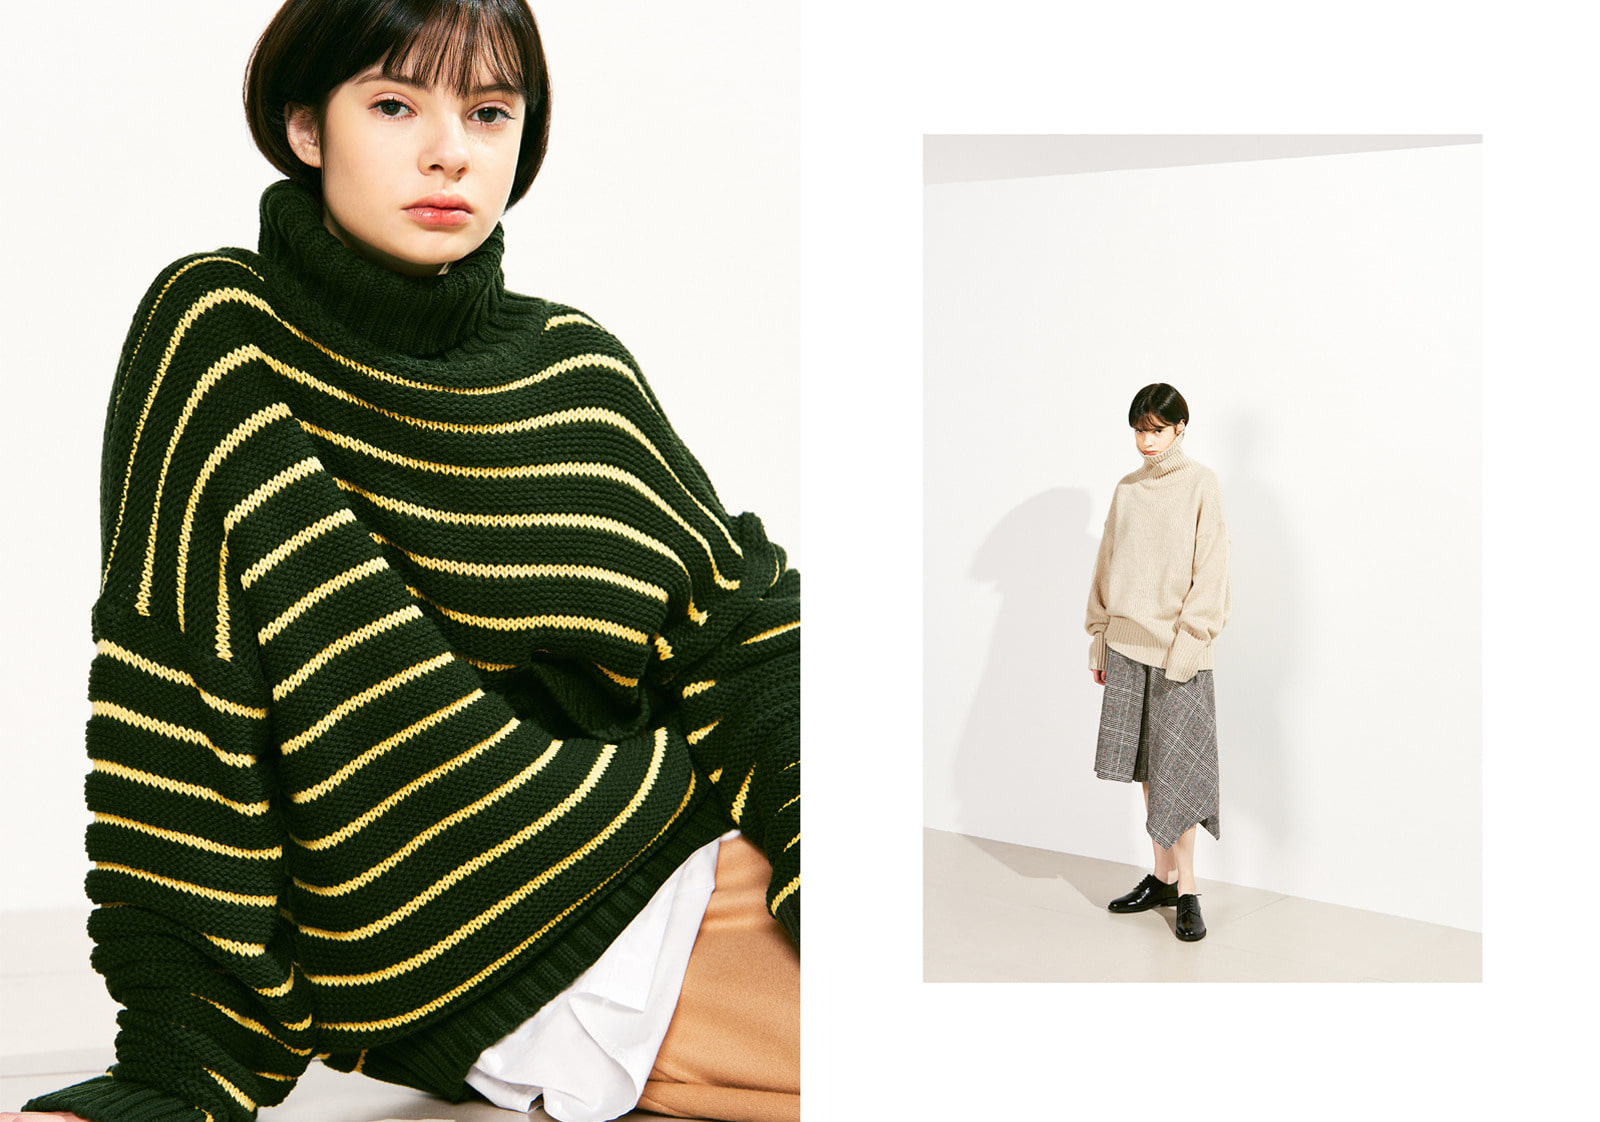 2017 F/W COLLECTION #2 LOOKBOOK